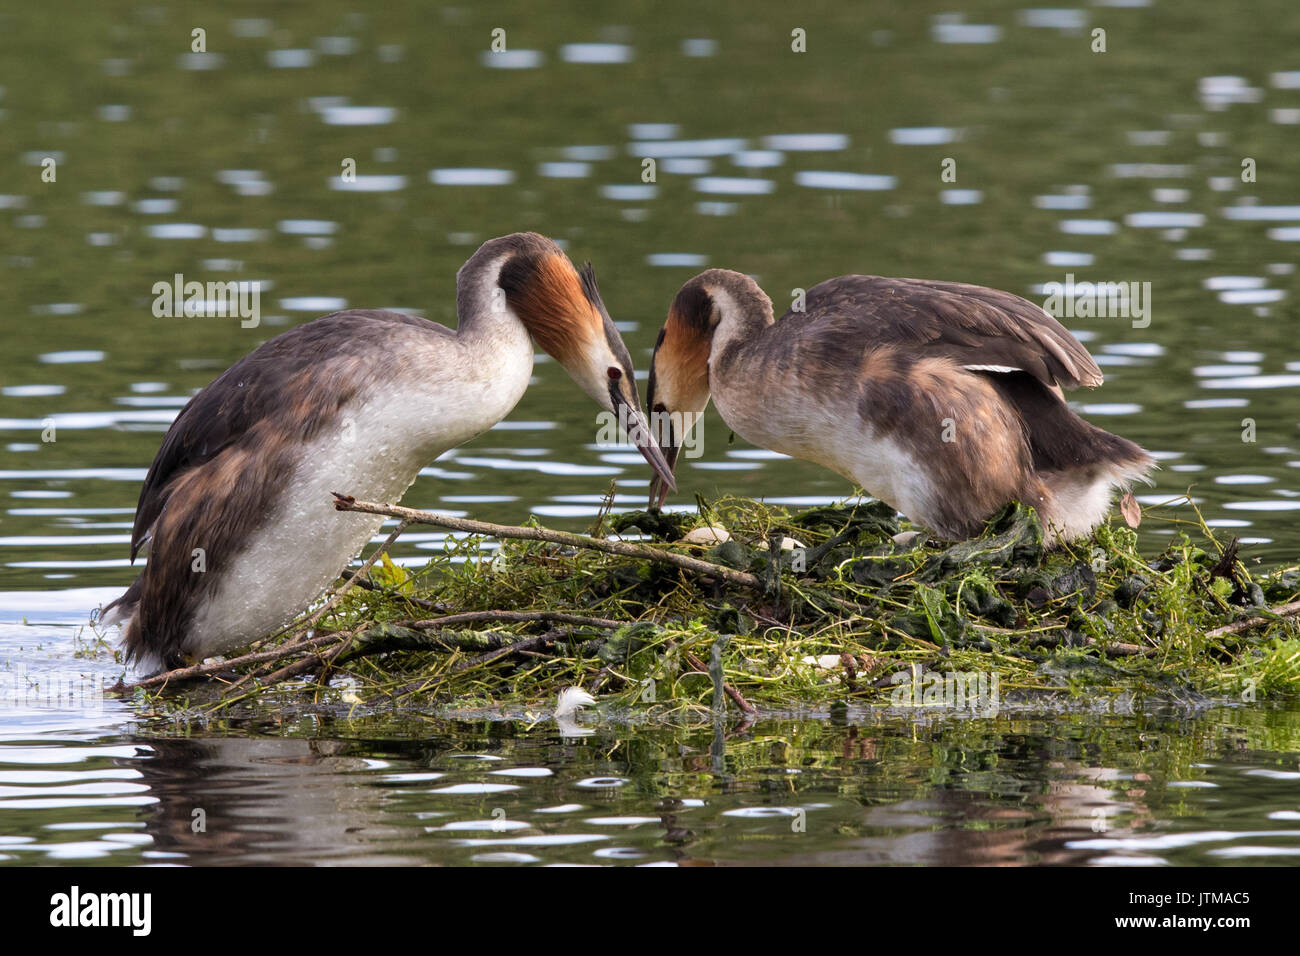 pair of Great Crested Grebes (Podiceps cristatus) changing over incubating duties - Stock Image